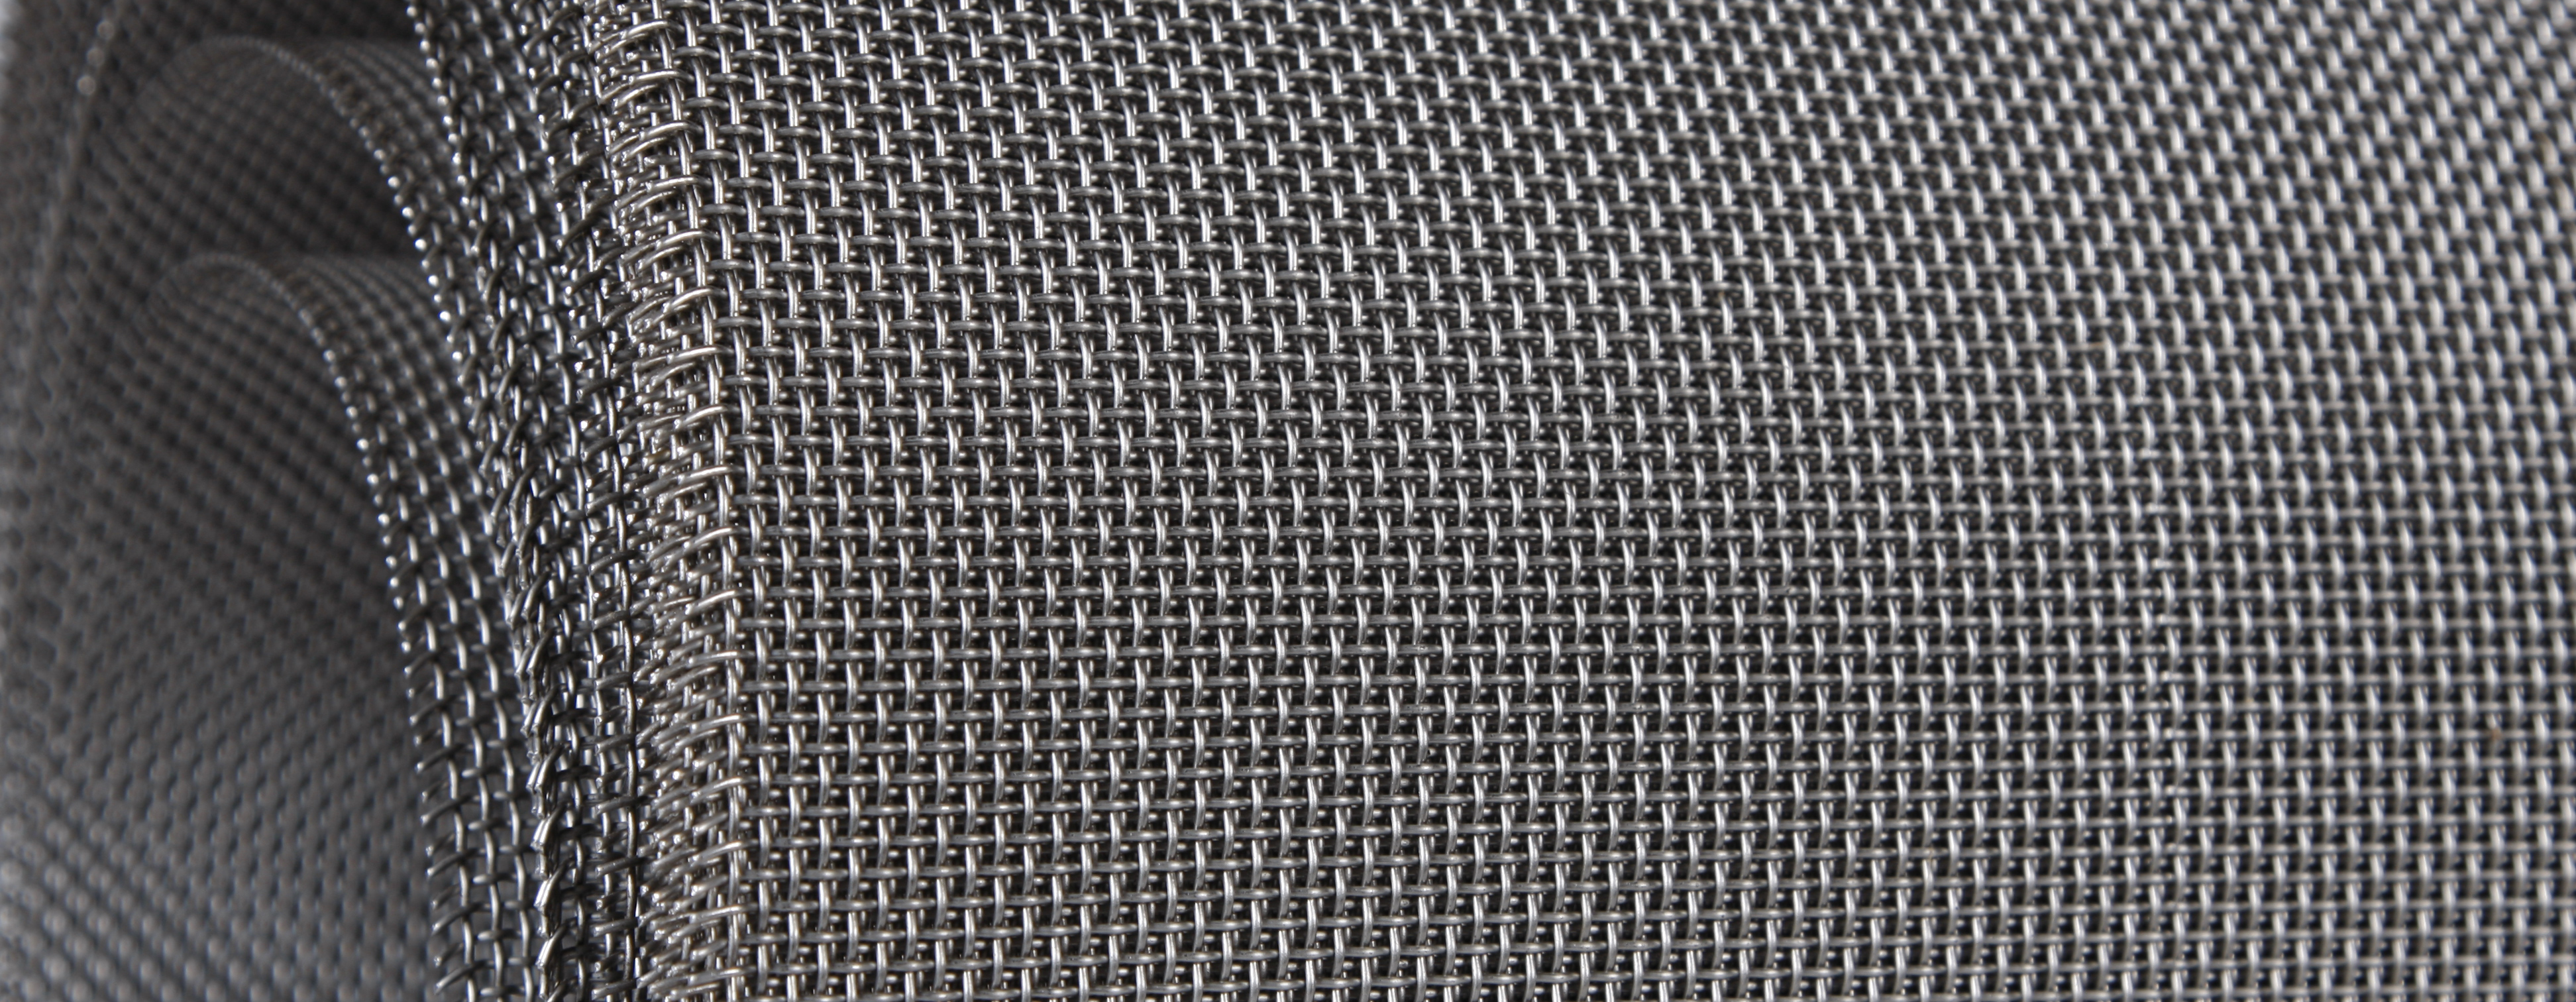 Stainless Steel Wire Mesh Newcore Global Pvt Ltd